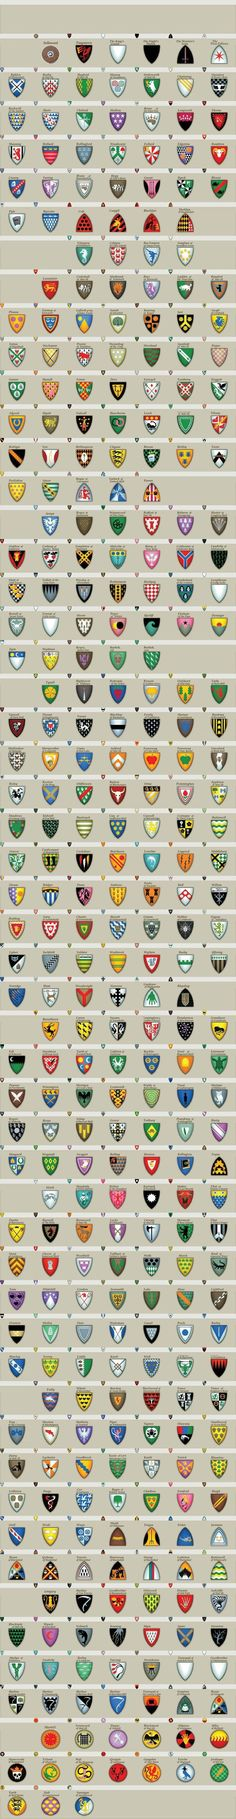 The Sigils / Banners of ASOIAF